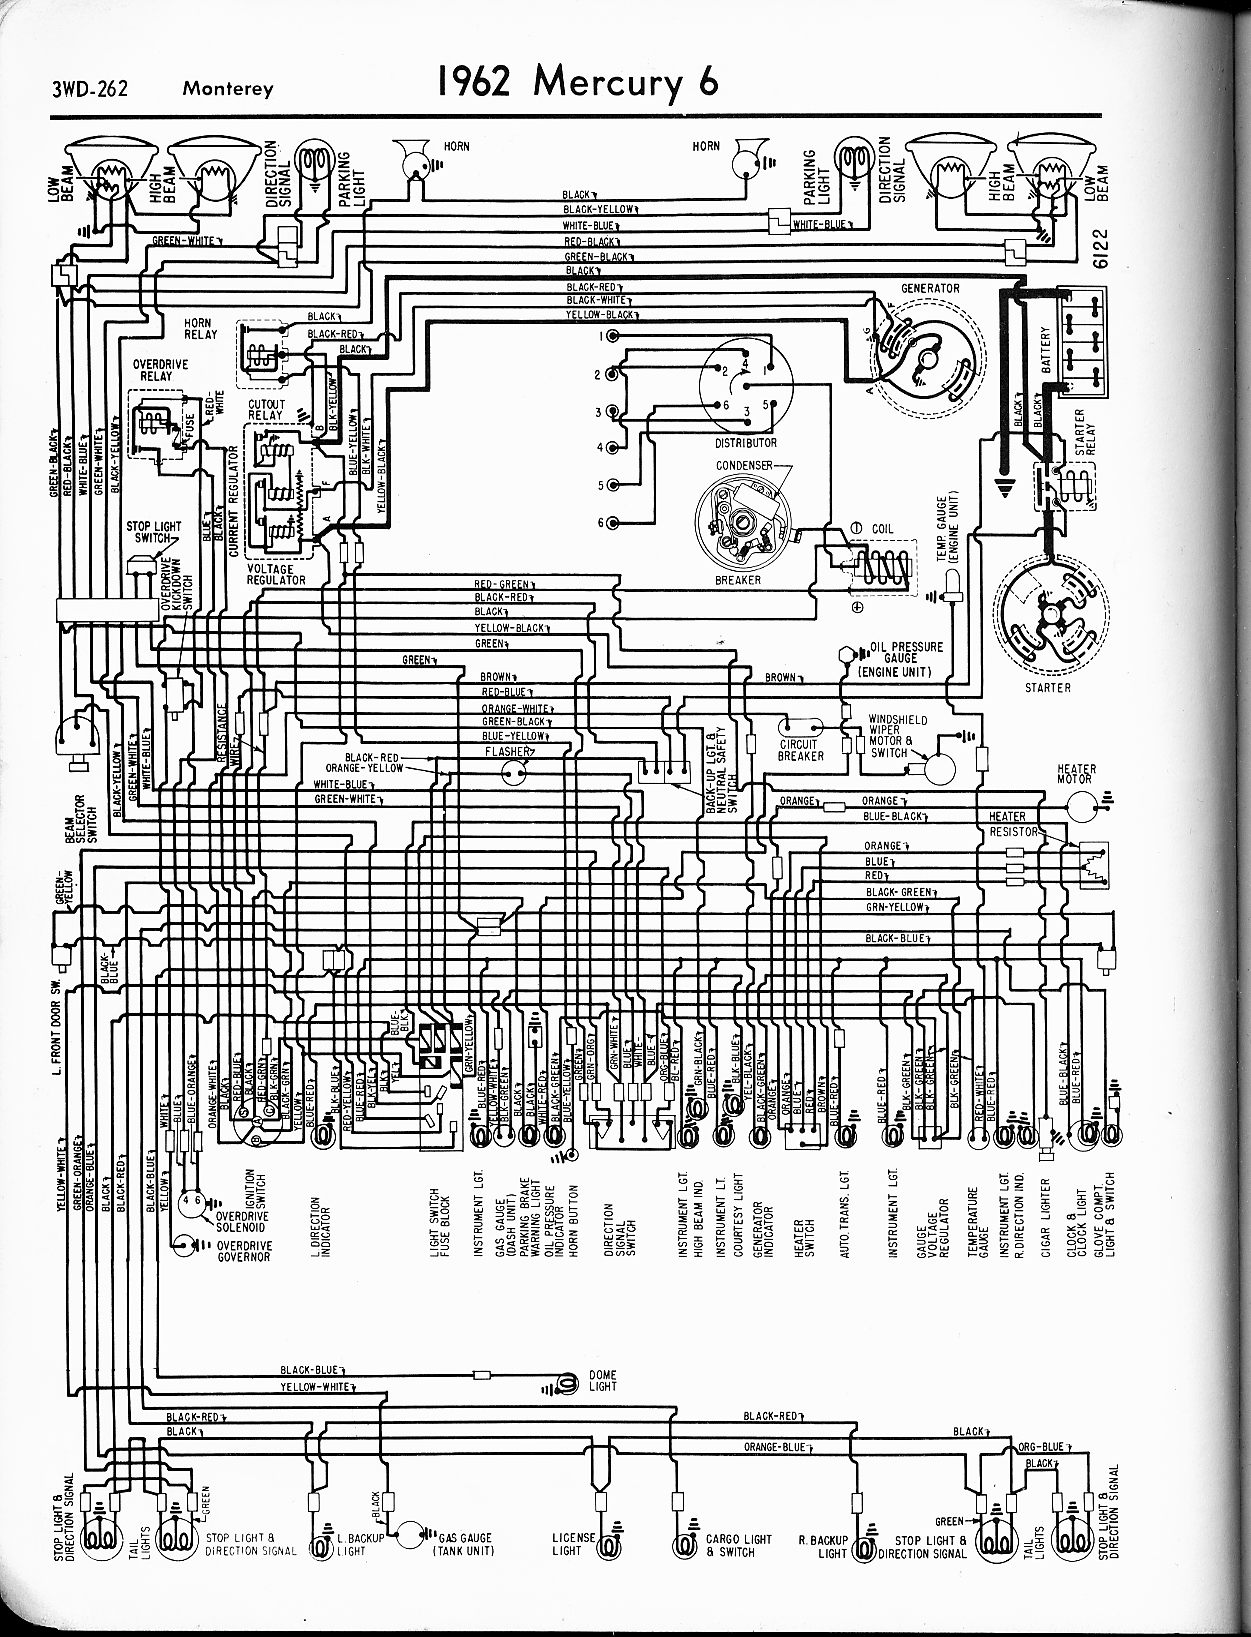 WRG-1299] 72 Buick Ignition Switch Wiring Diagram